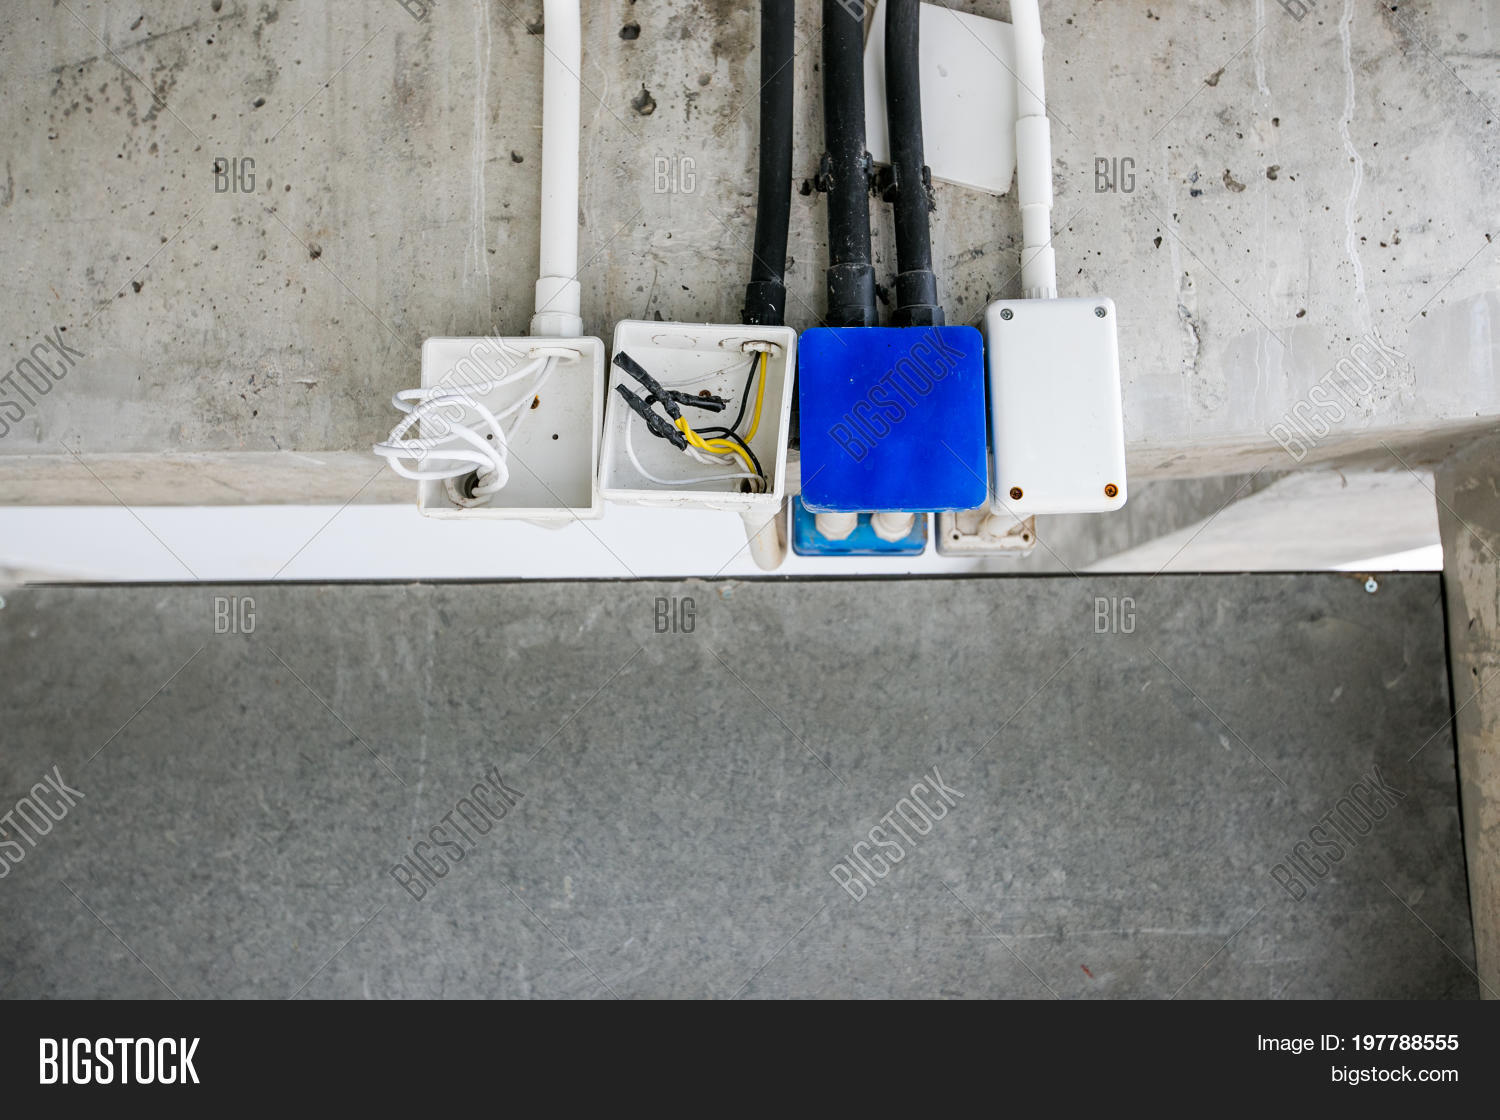 Electrical Junction Image Photo Free